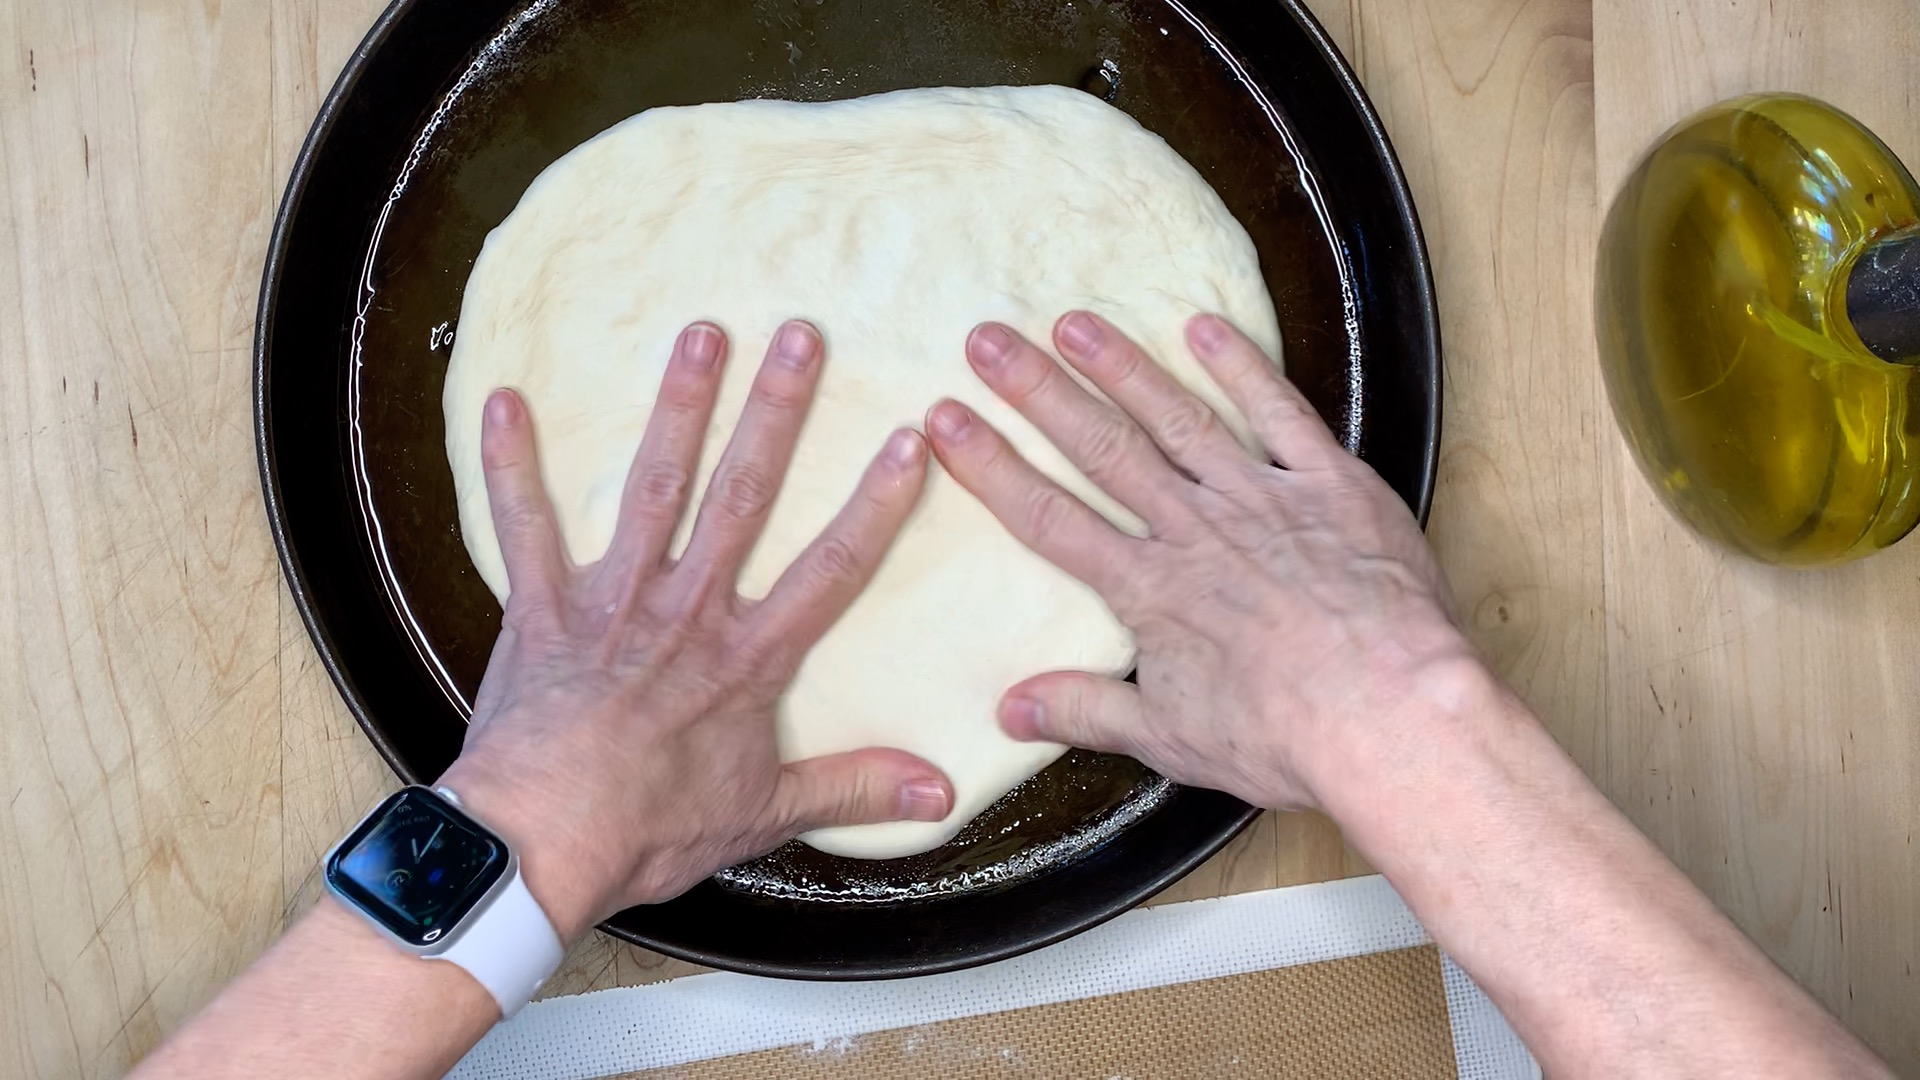 spreading the dough with your fingers